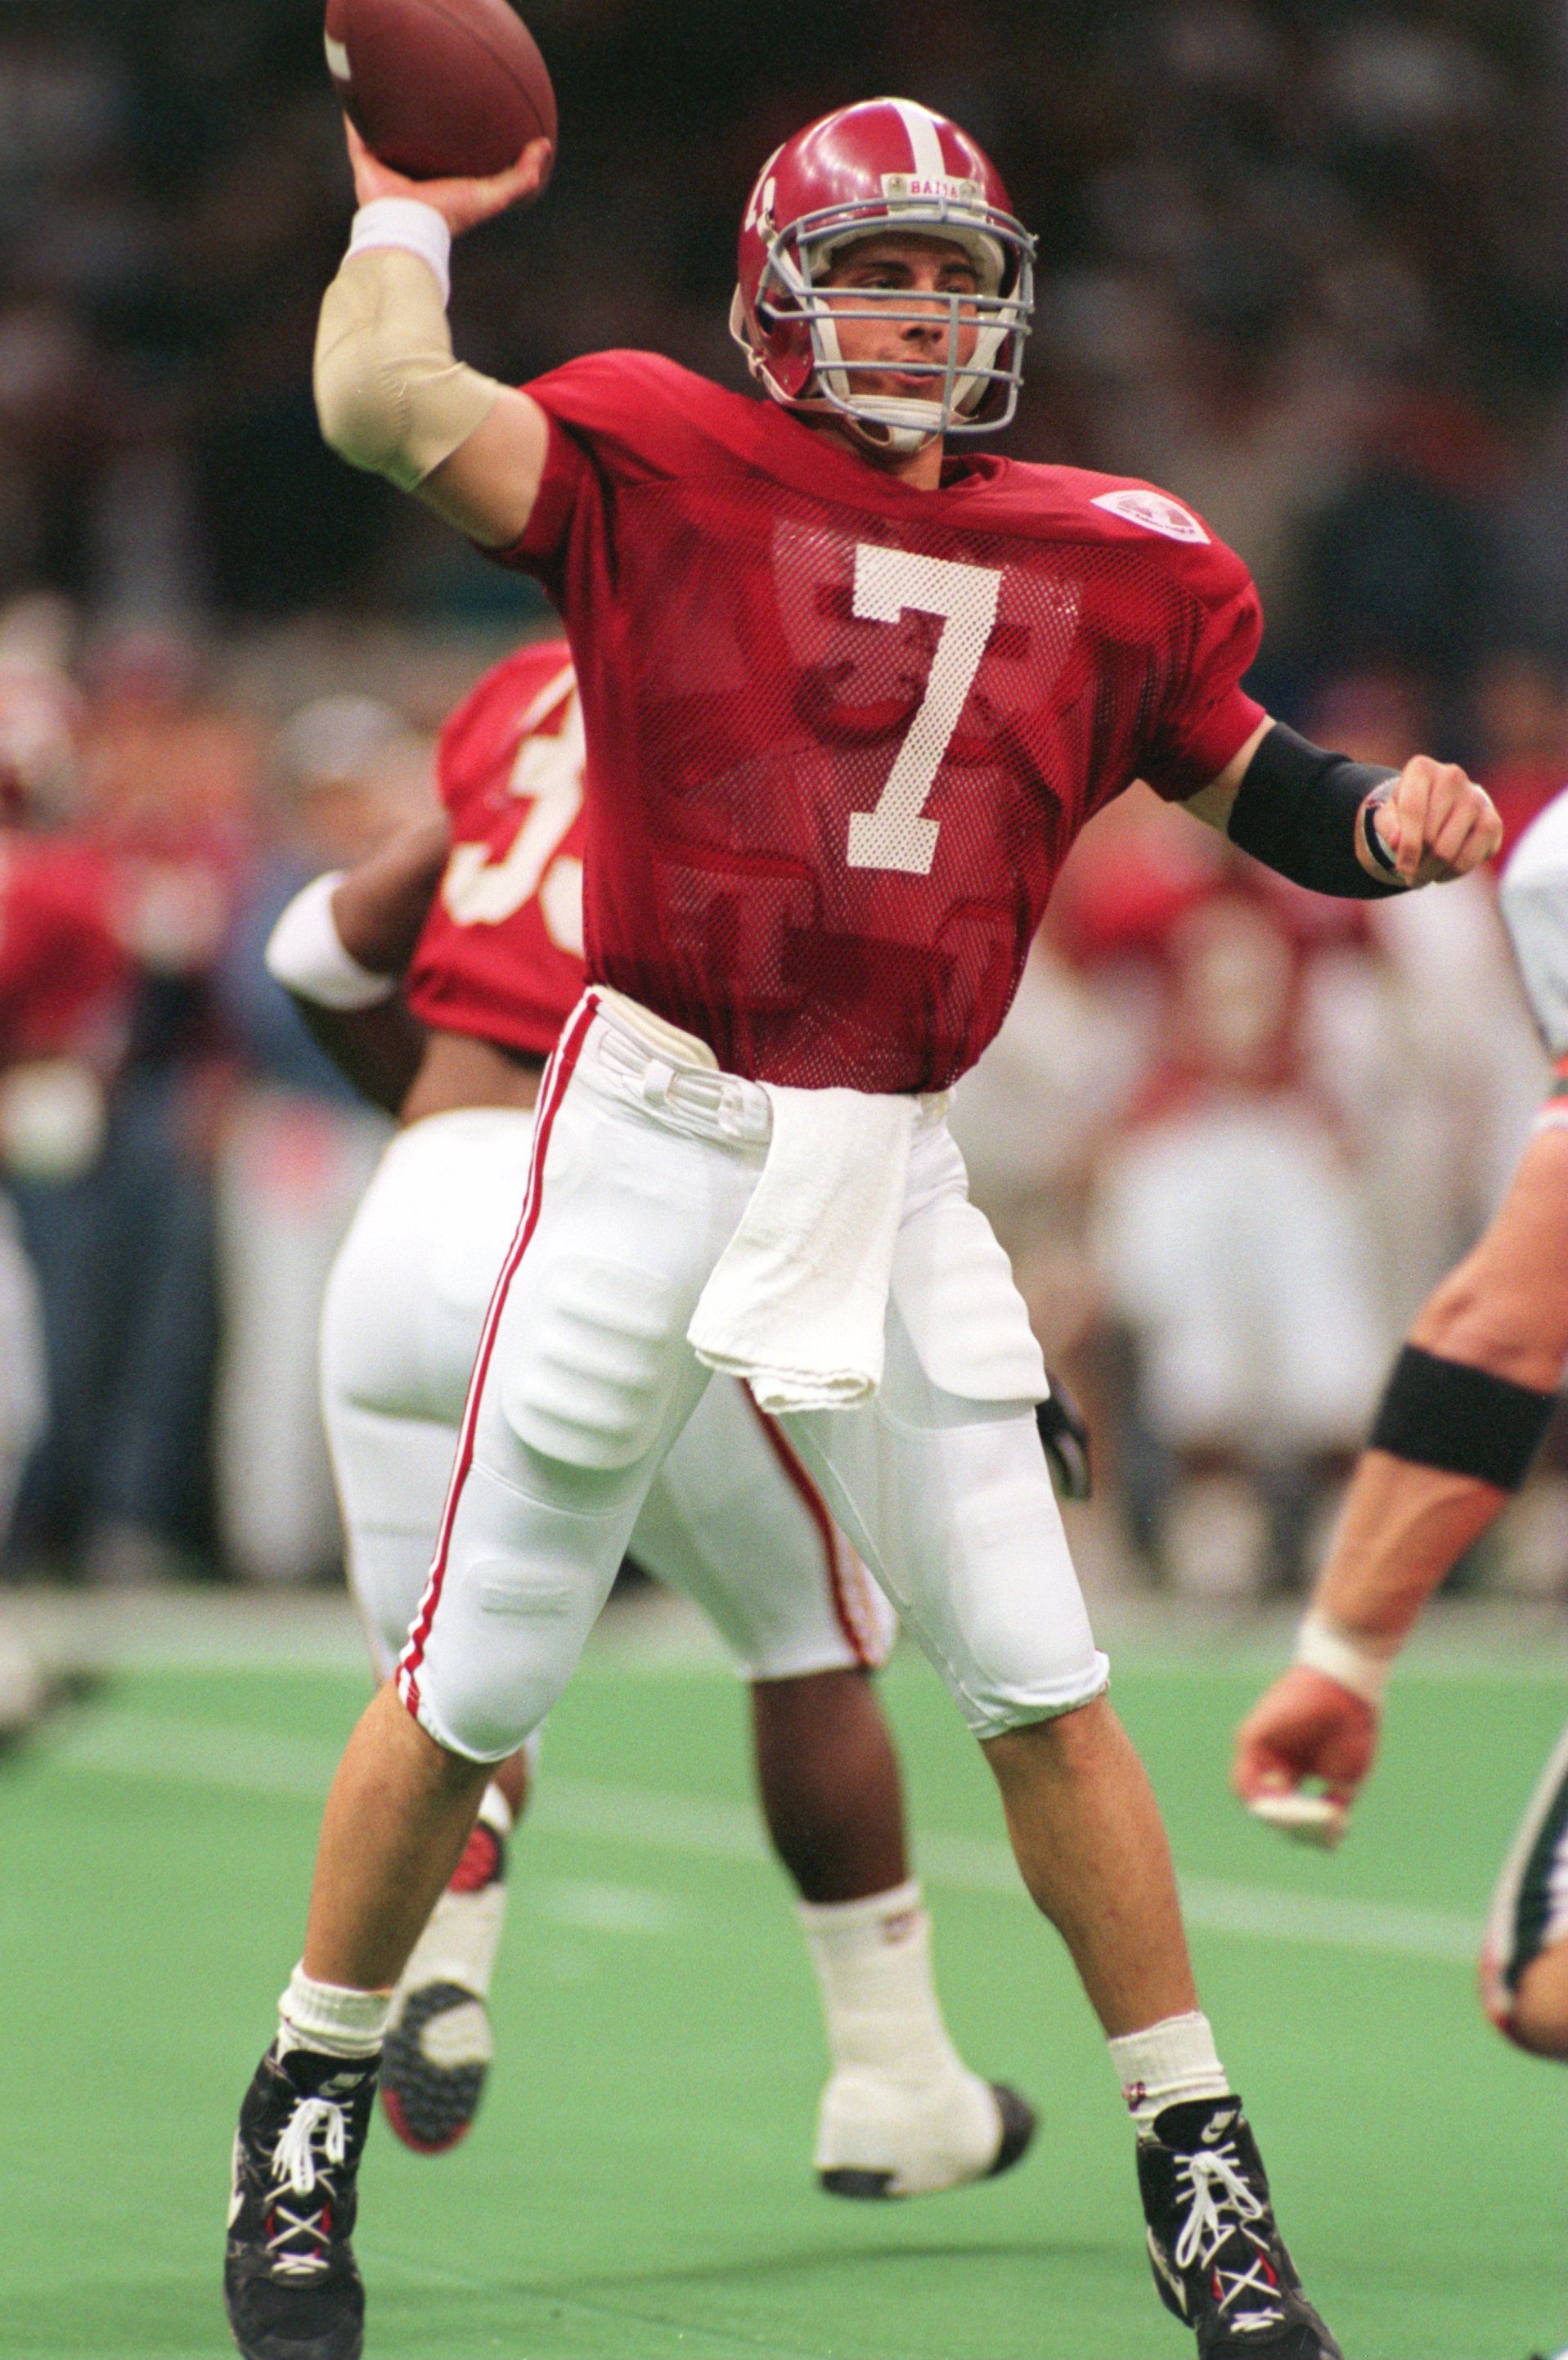 ALABAMA QUARTERBACK JAY BARKER DELIVERS A PASS FROM THE POCKET DURING THE CRIMSON TIDE'S 34-13 VICTORY OVER THE MIAMI HURRICANES IN THE 1993 SUGAR BOWL AT THE SUPERDOME IN NEW ORLEANS, LOUISIANA. WITH THE VICTORY, ALABAMA FINISHED UNDEFEATED AND WAS AWARD